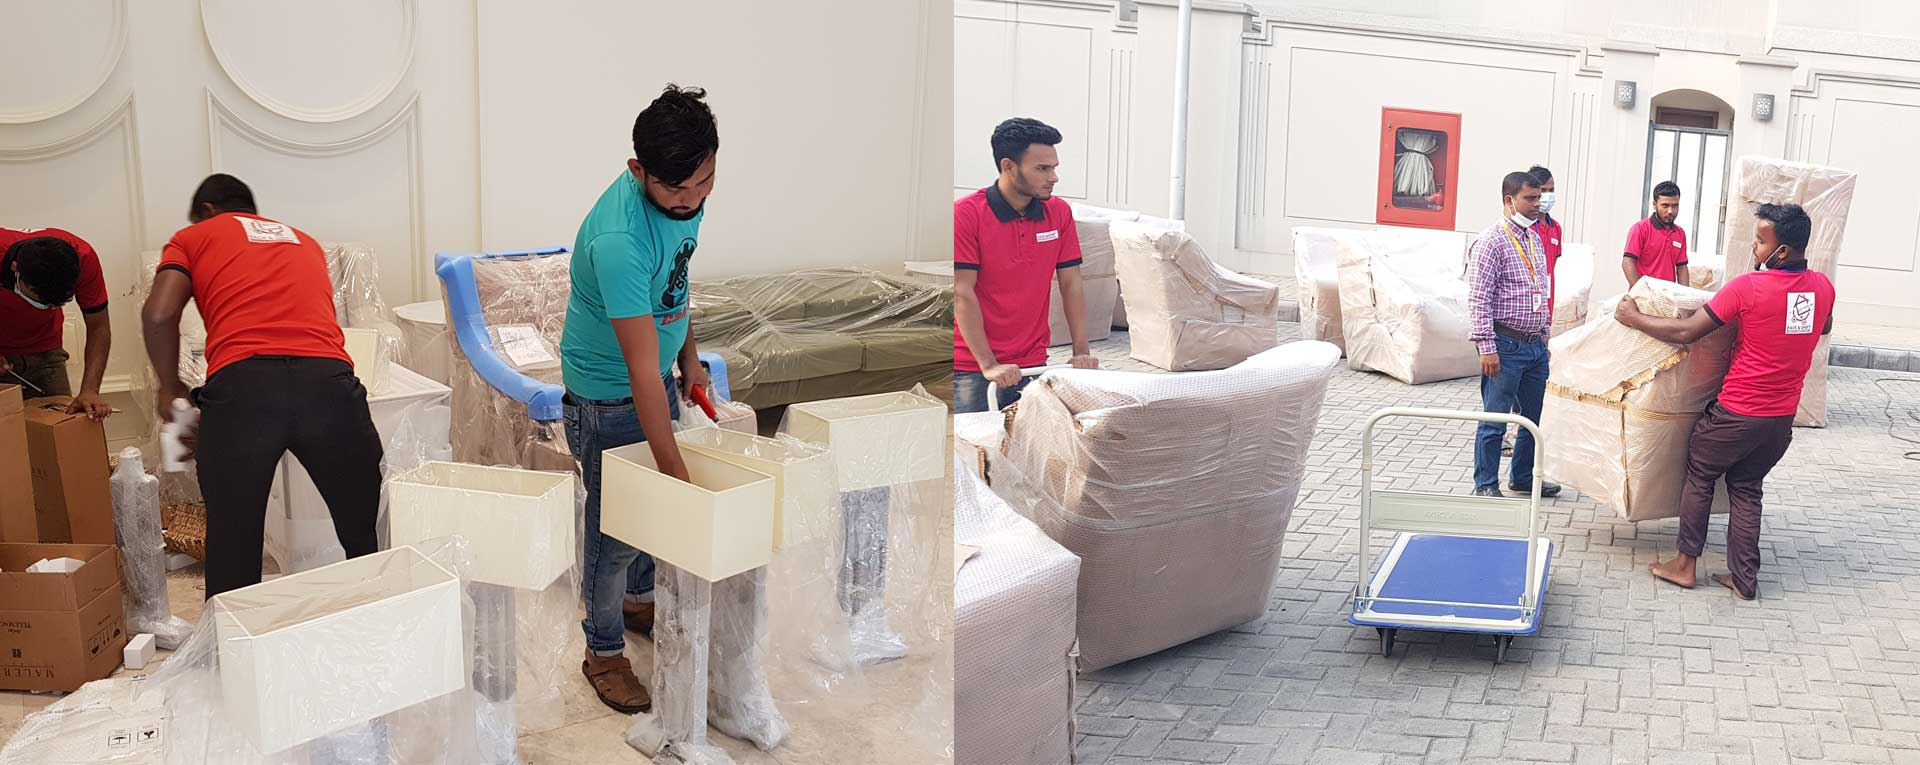 House shifting services by expert house movers